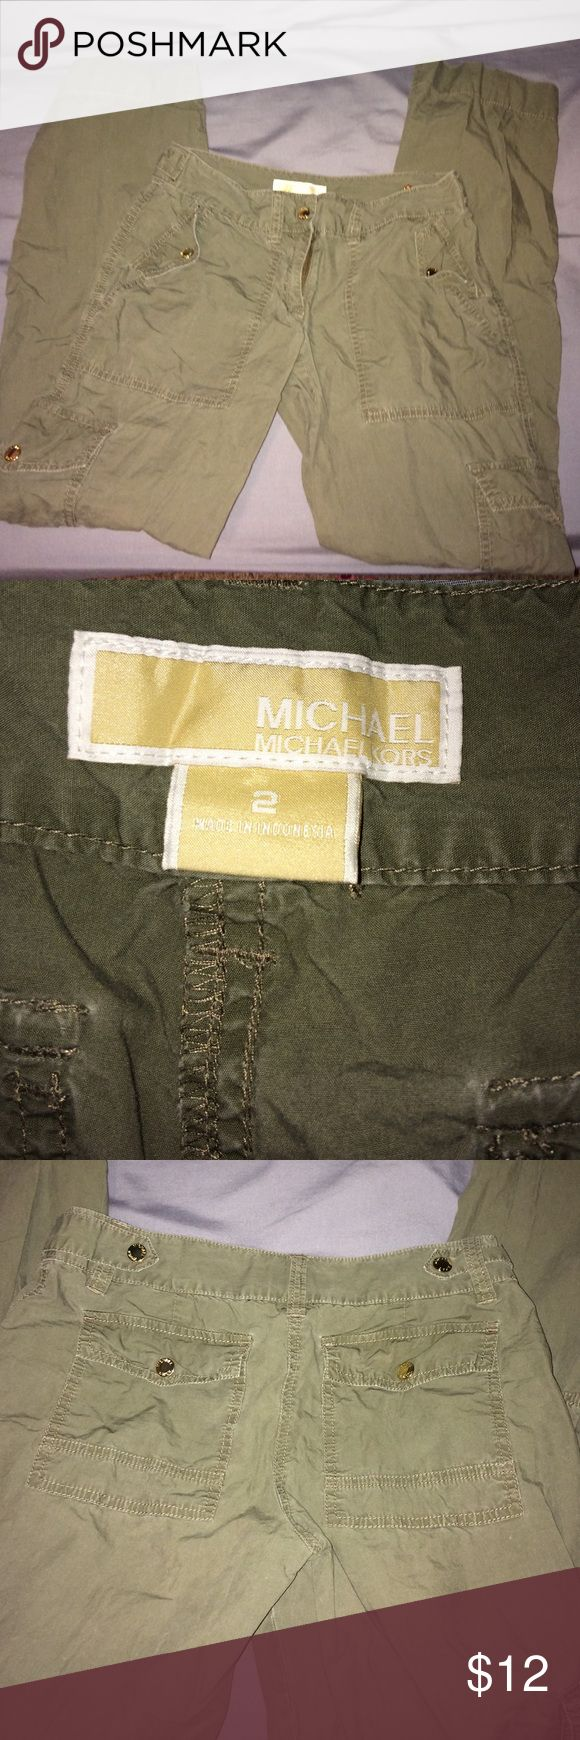 Michael Kors Cargo Pants Lightly worn cargo pants with gold details. Super cute and can be worn long or rolled up. Looks great with flats or wedges and a black tshirt. MICHAEL Michael Kors Pants